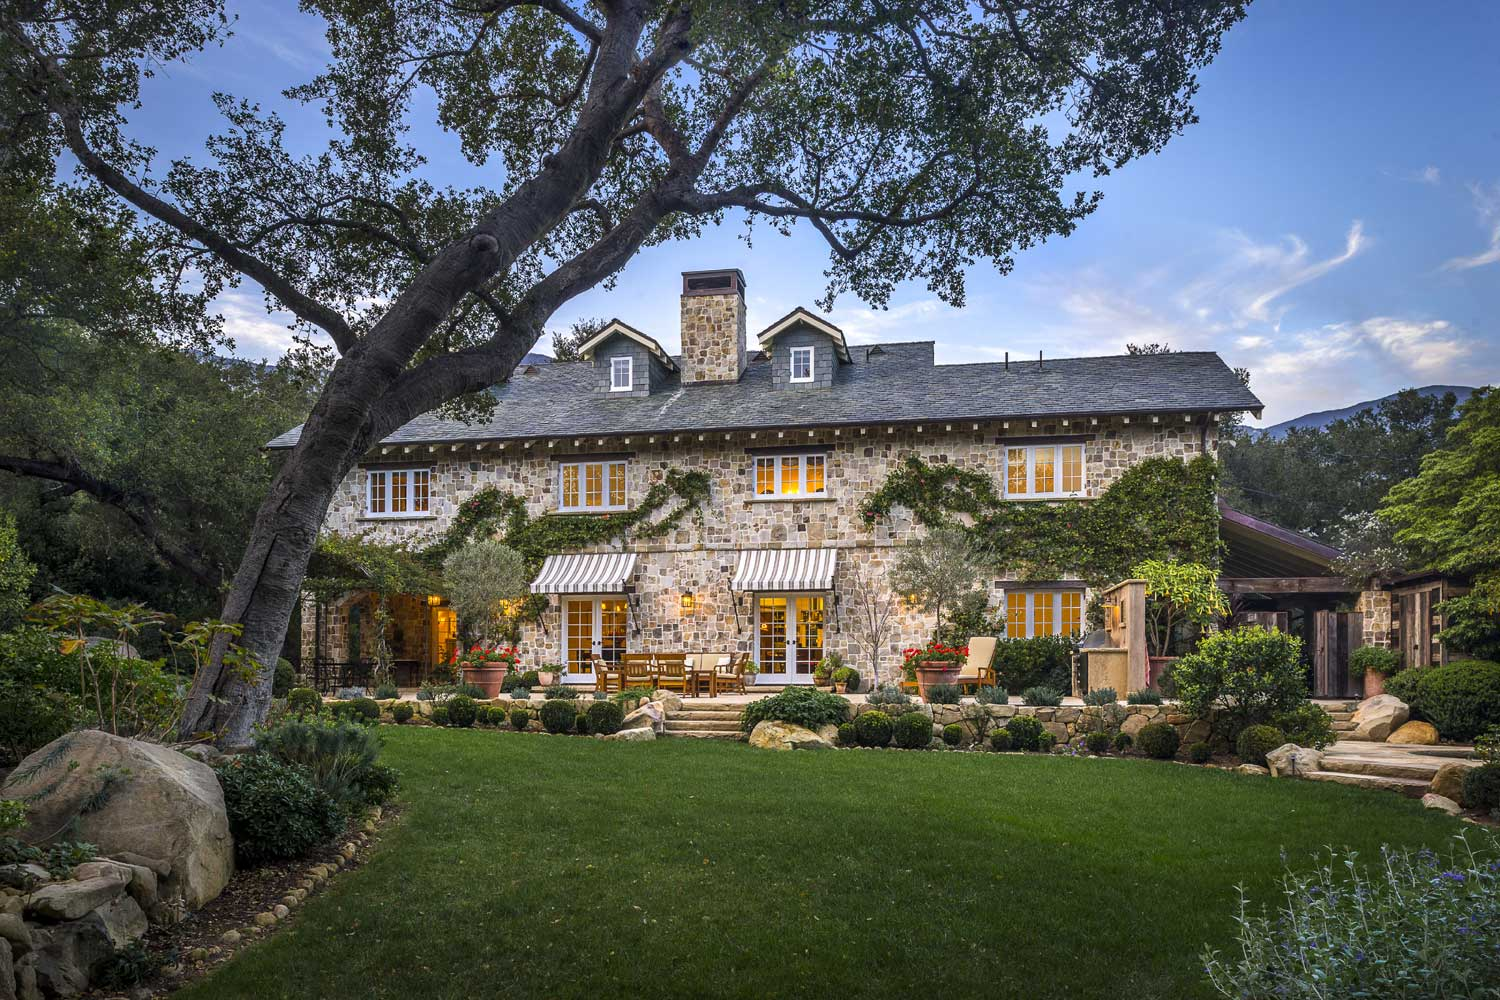 <b>Montecito, California</b><br/><i>4 Bedrooms, 4,460 sq. ft.</i><br/>French-inspired stone farmhouse in Montecito's Golden Quadrangle